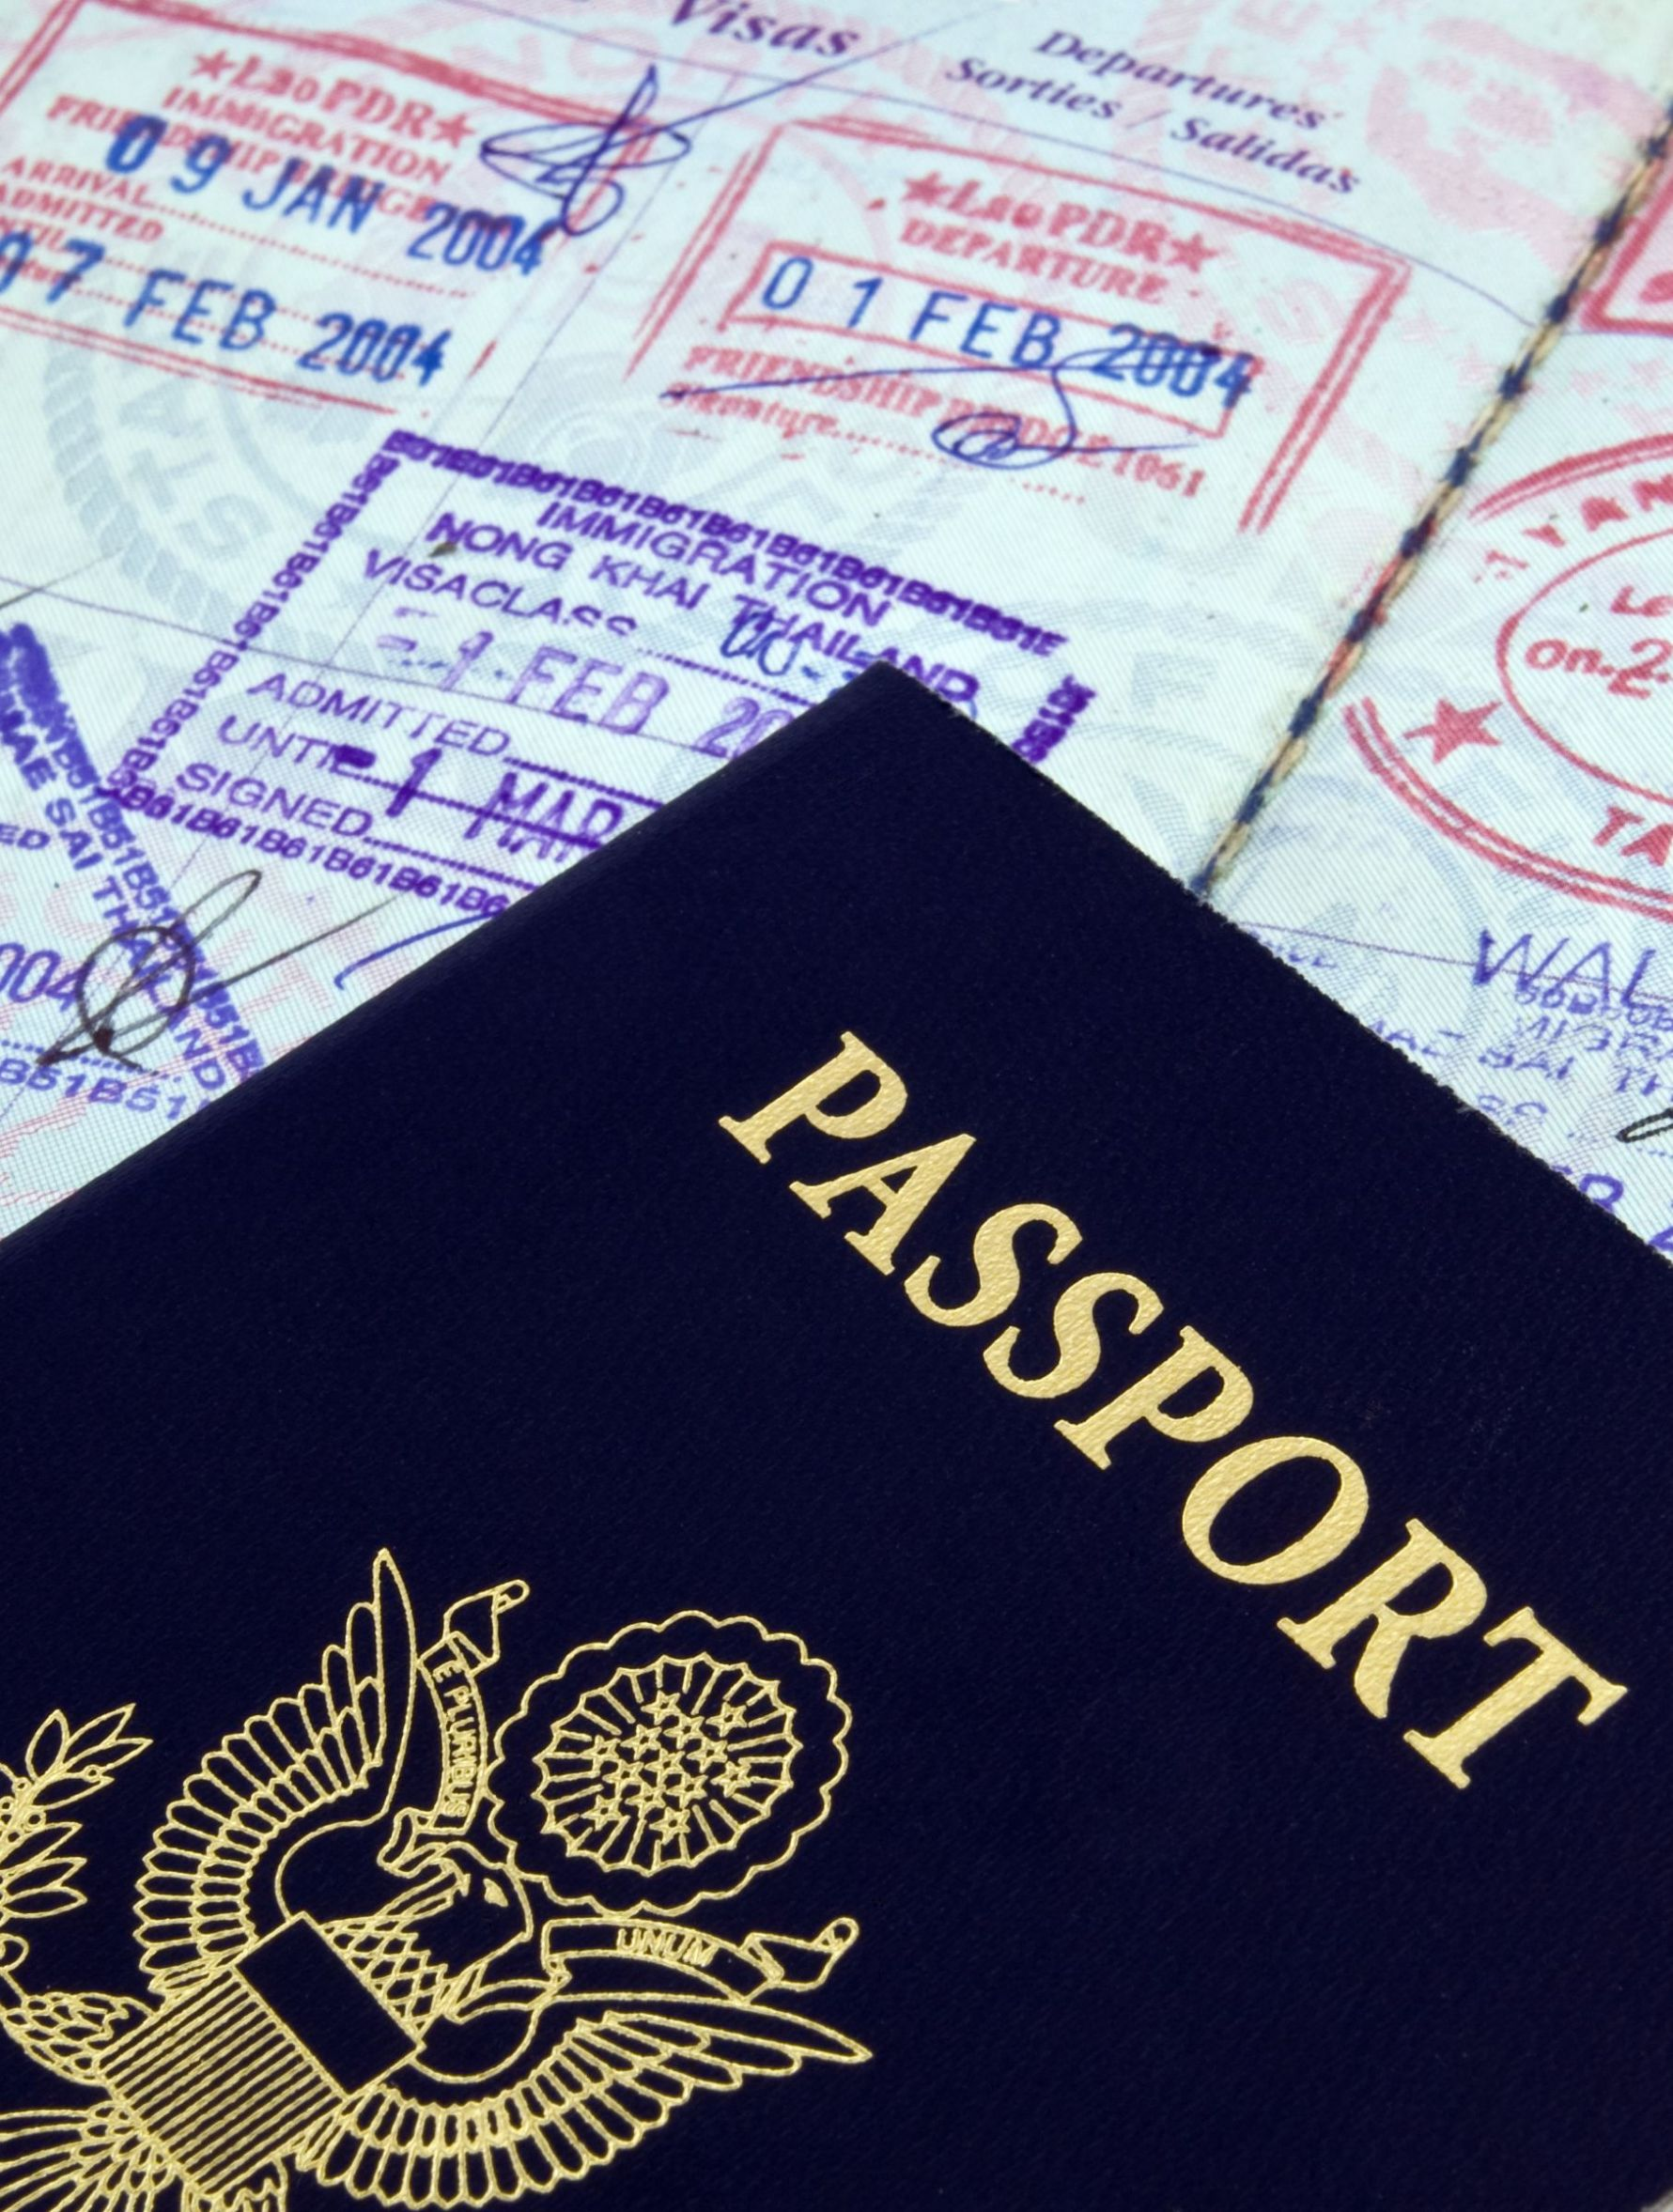 Do you need assistance with obtain a passport or visa?